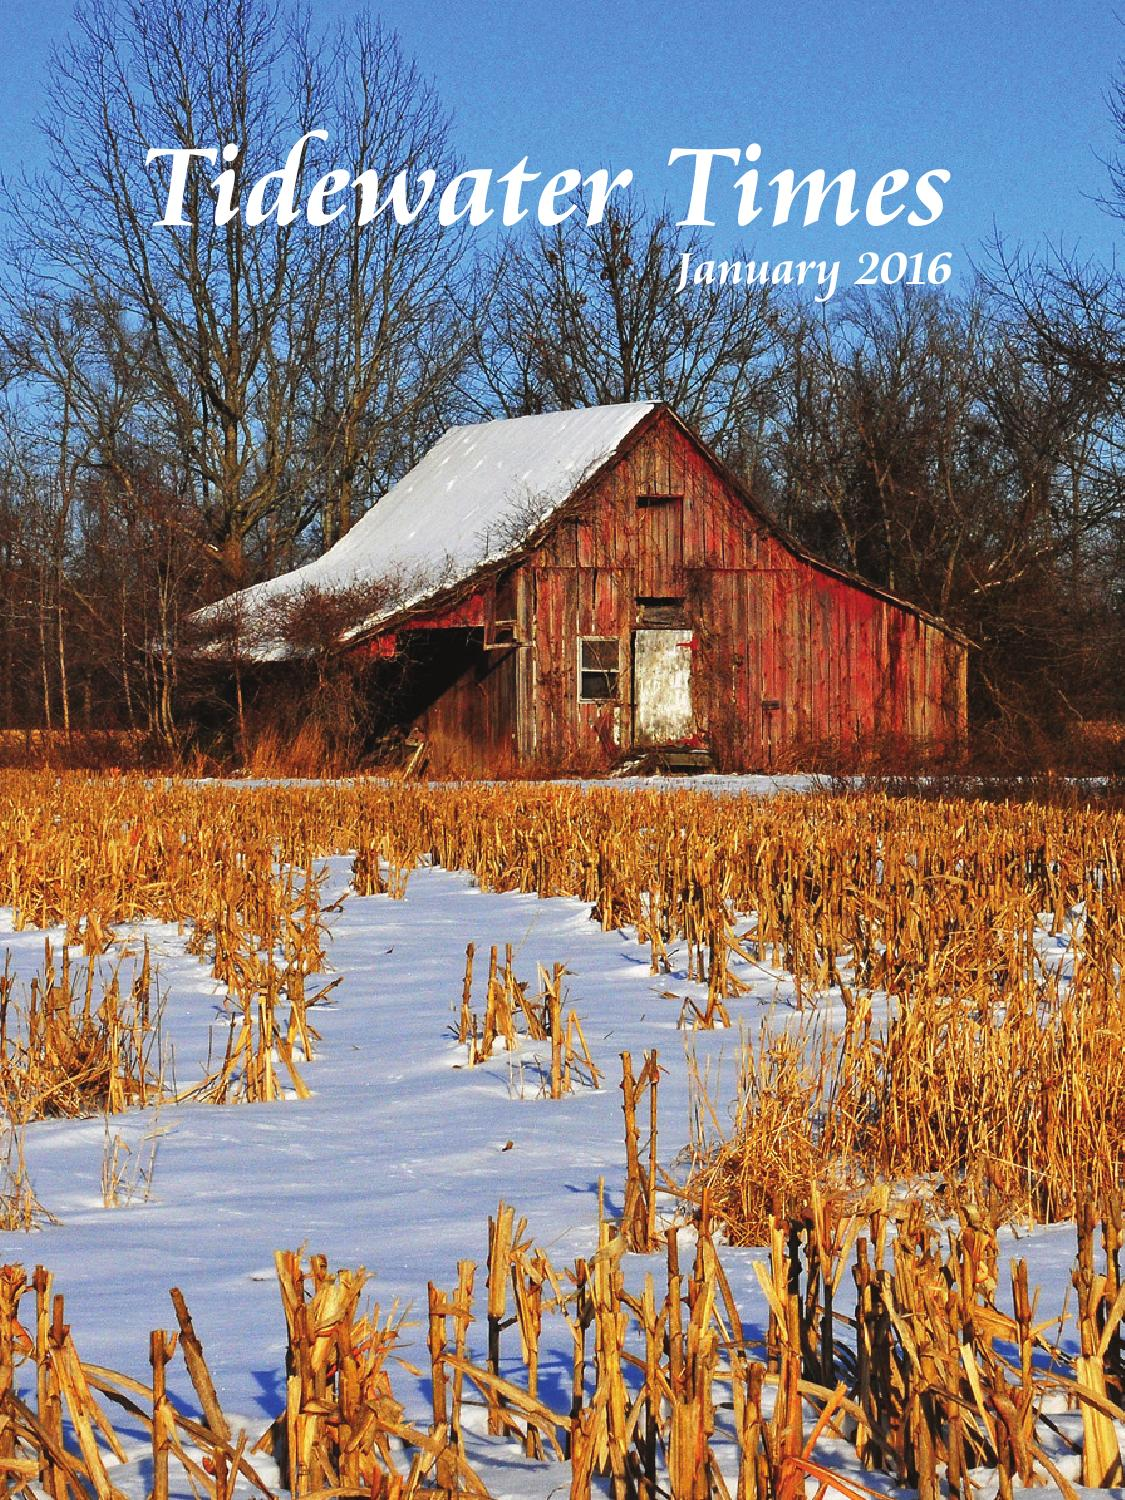 January 2016 ttimes web magazine by tidewater times issuu fandeluxe Image collections